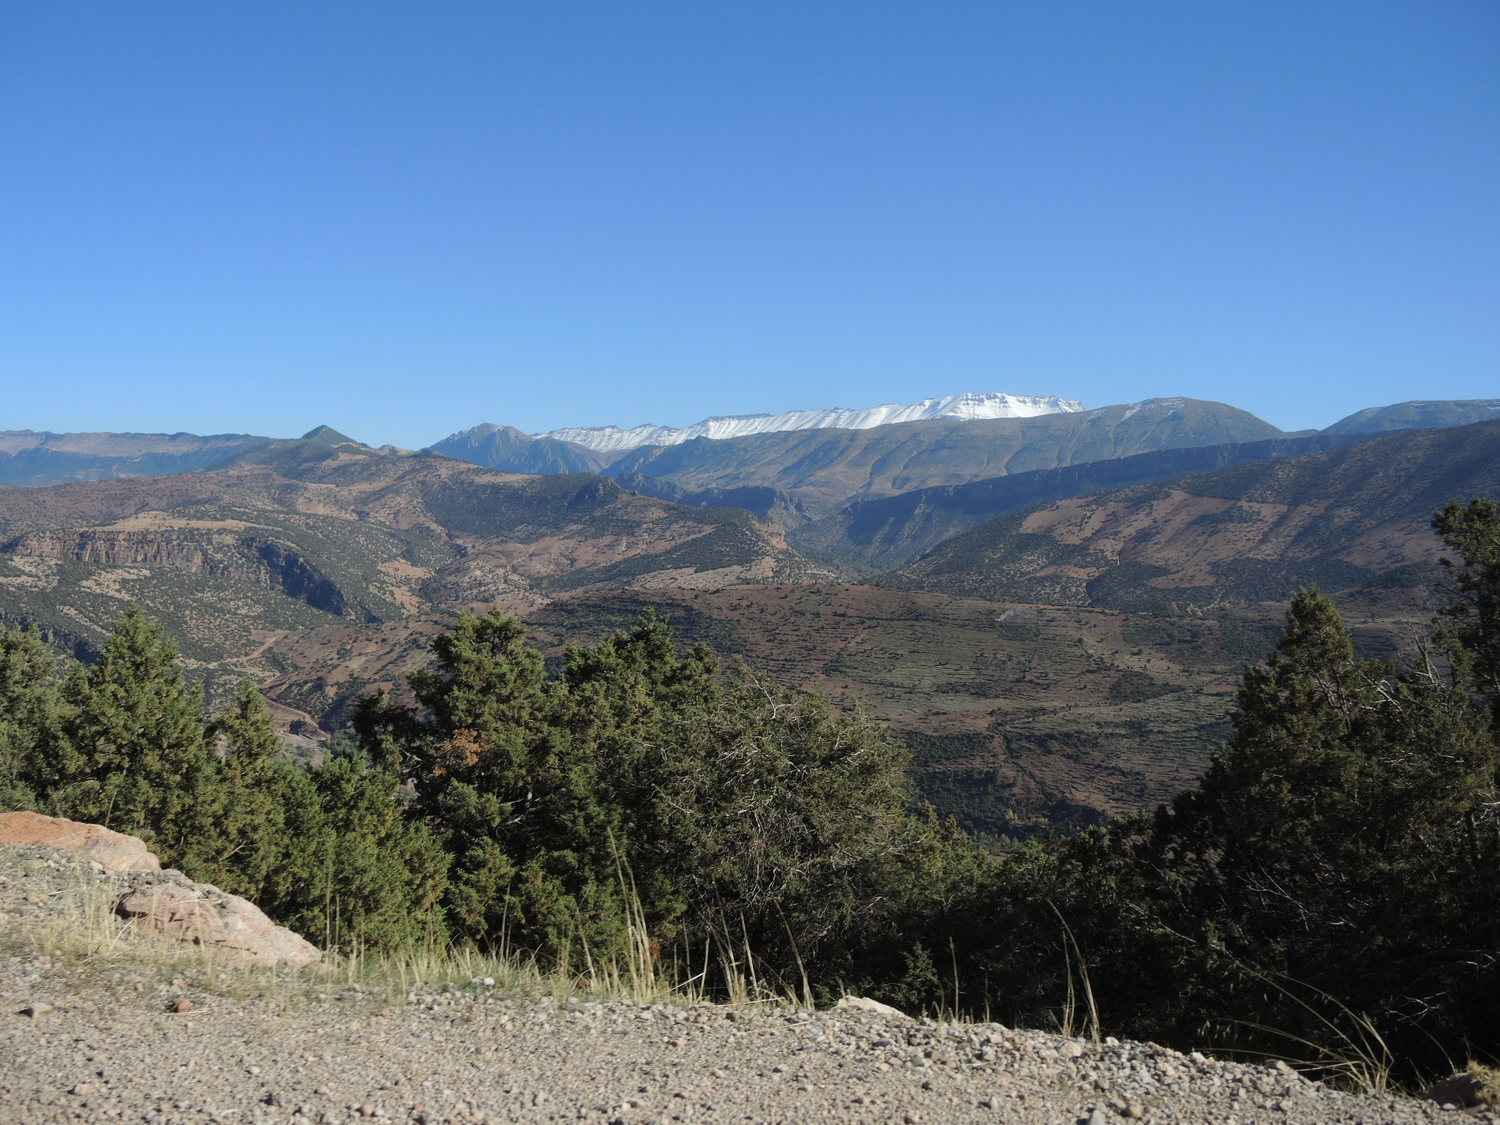 Atlas mountains with snowy tops in the distance